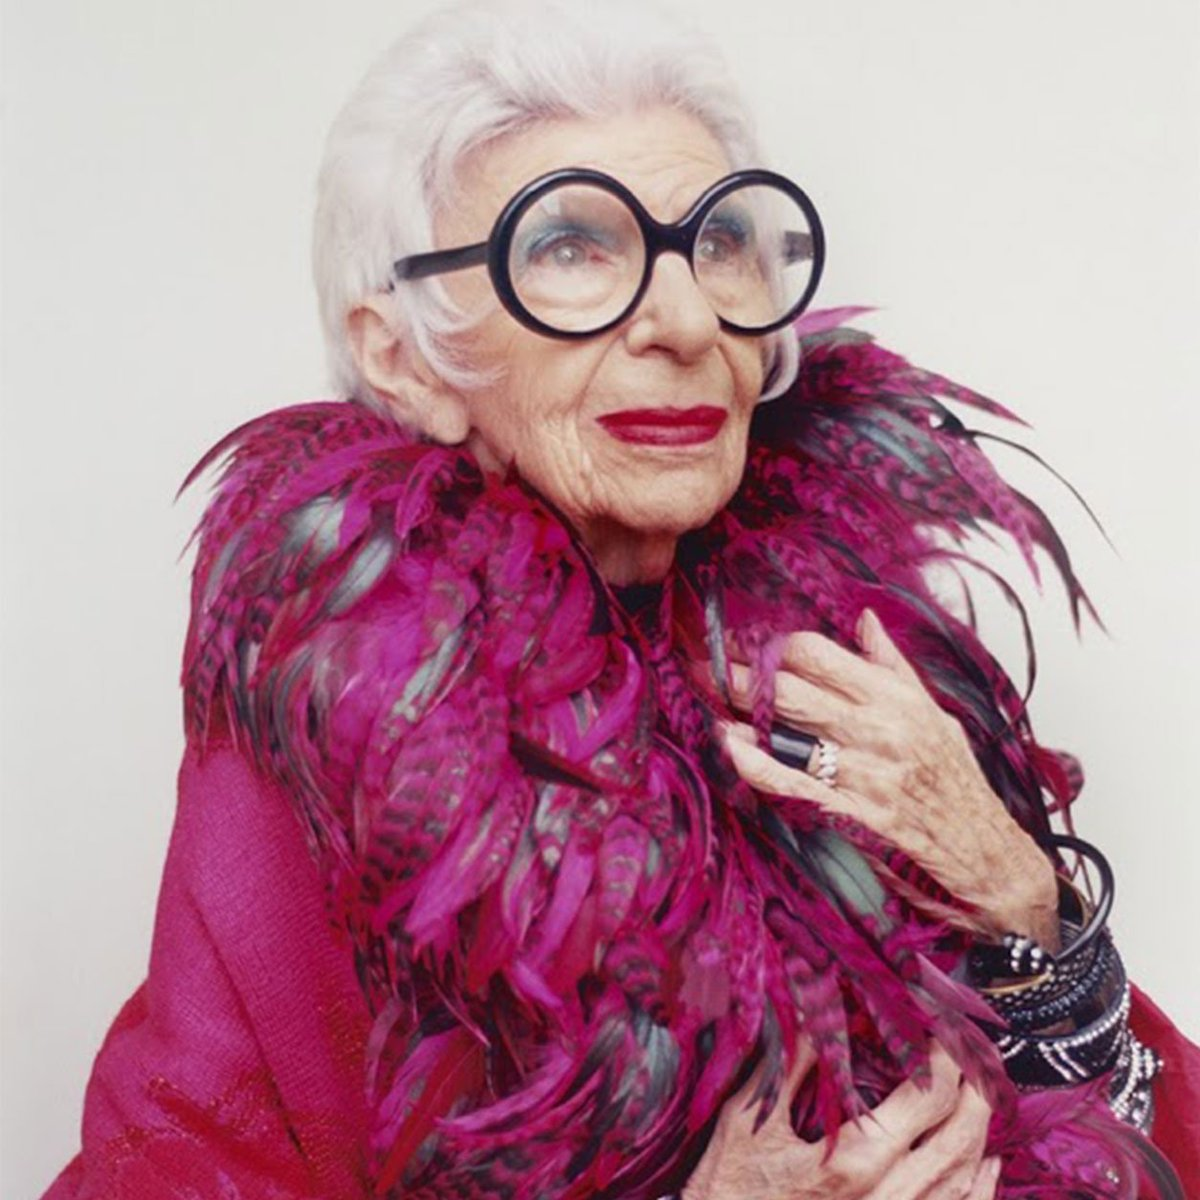 """I would advise you to be happy rather than well-dressed. It's better to be happy."" — Iris Apfel  Happy Friday! https://t.co/fqGPx8pH8a"